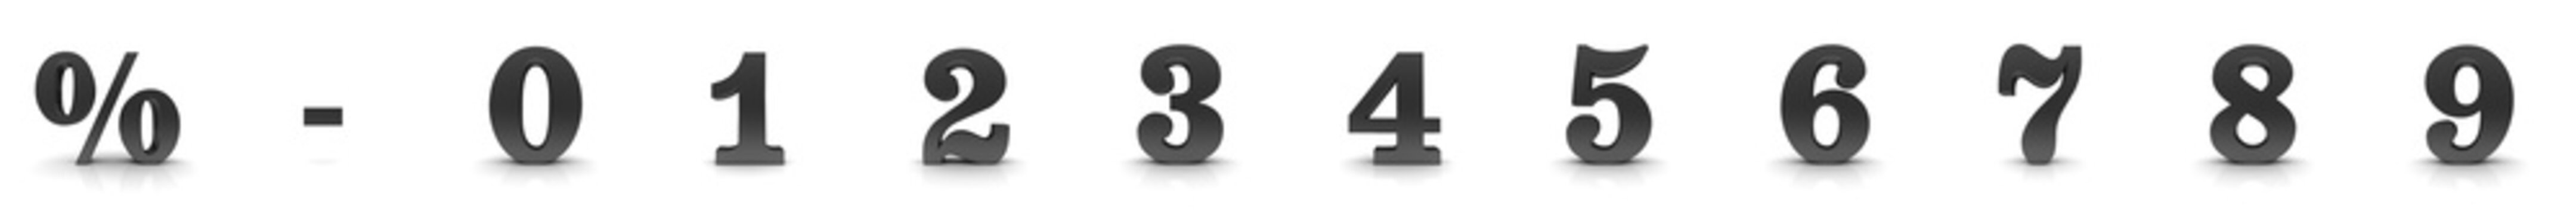 numbers 3d black 01 2 3 4 5 6 7 8 9 percent sign percentage symbol interest rate sale discount icon